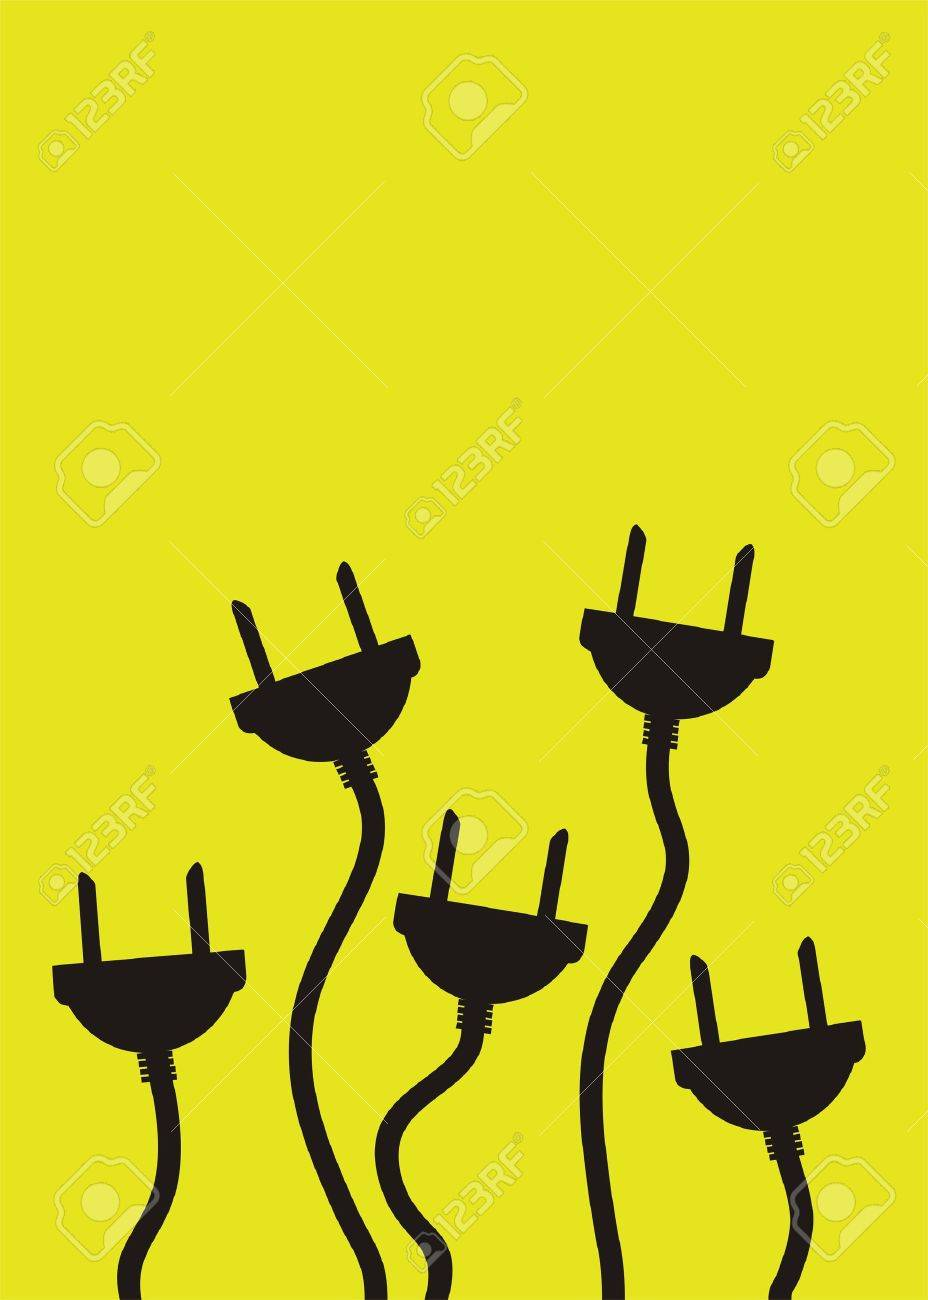 Plugs with extension cable Plug Outlet Graphic